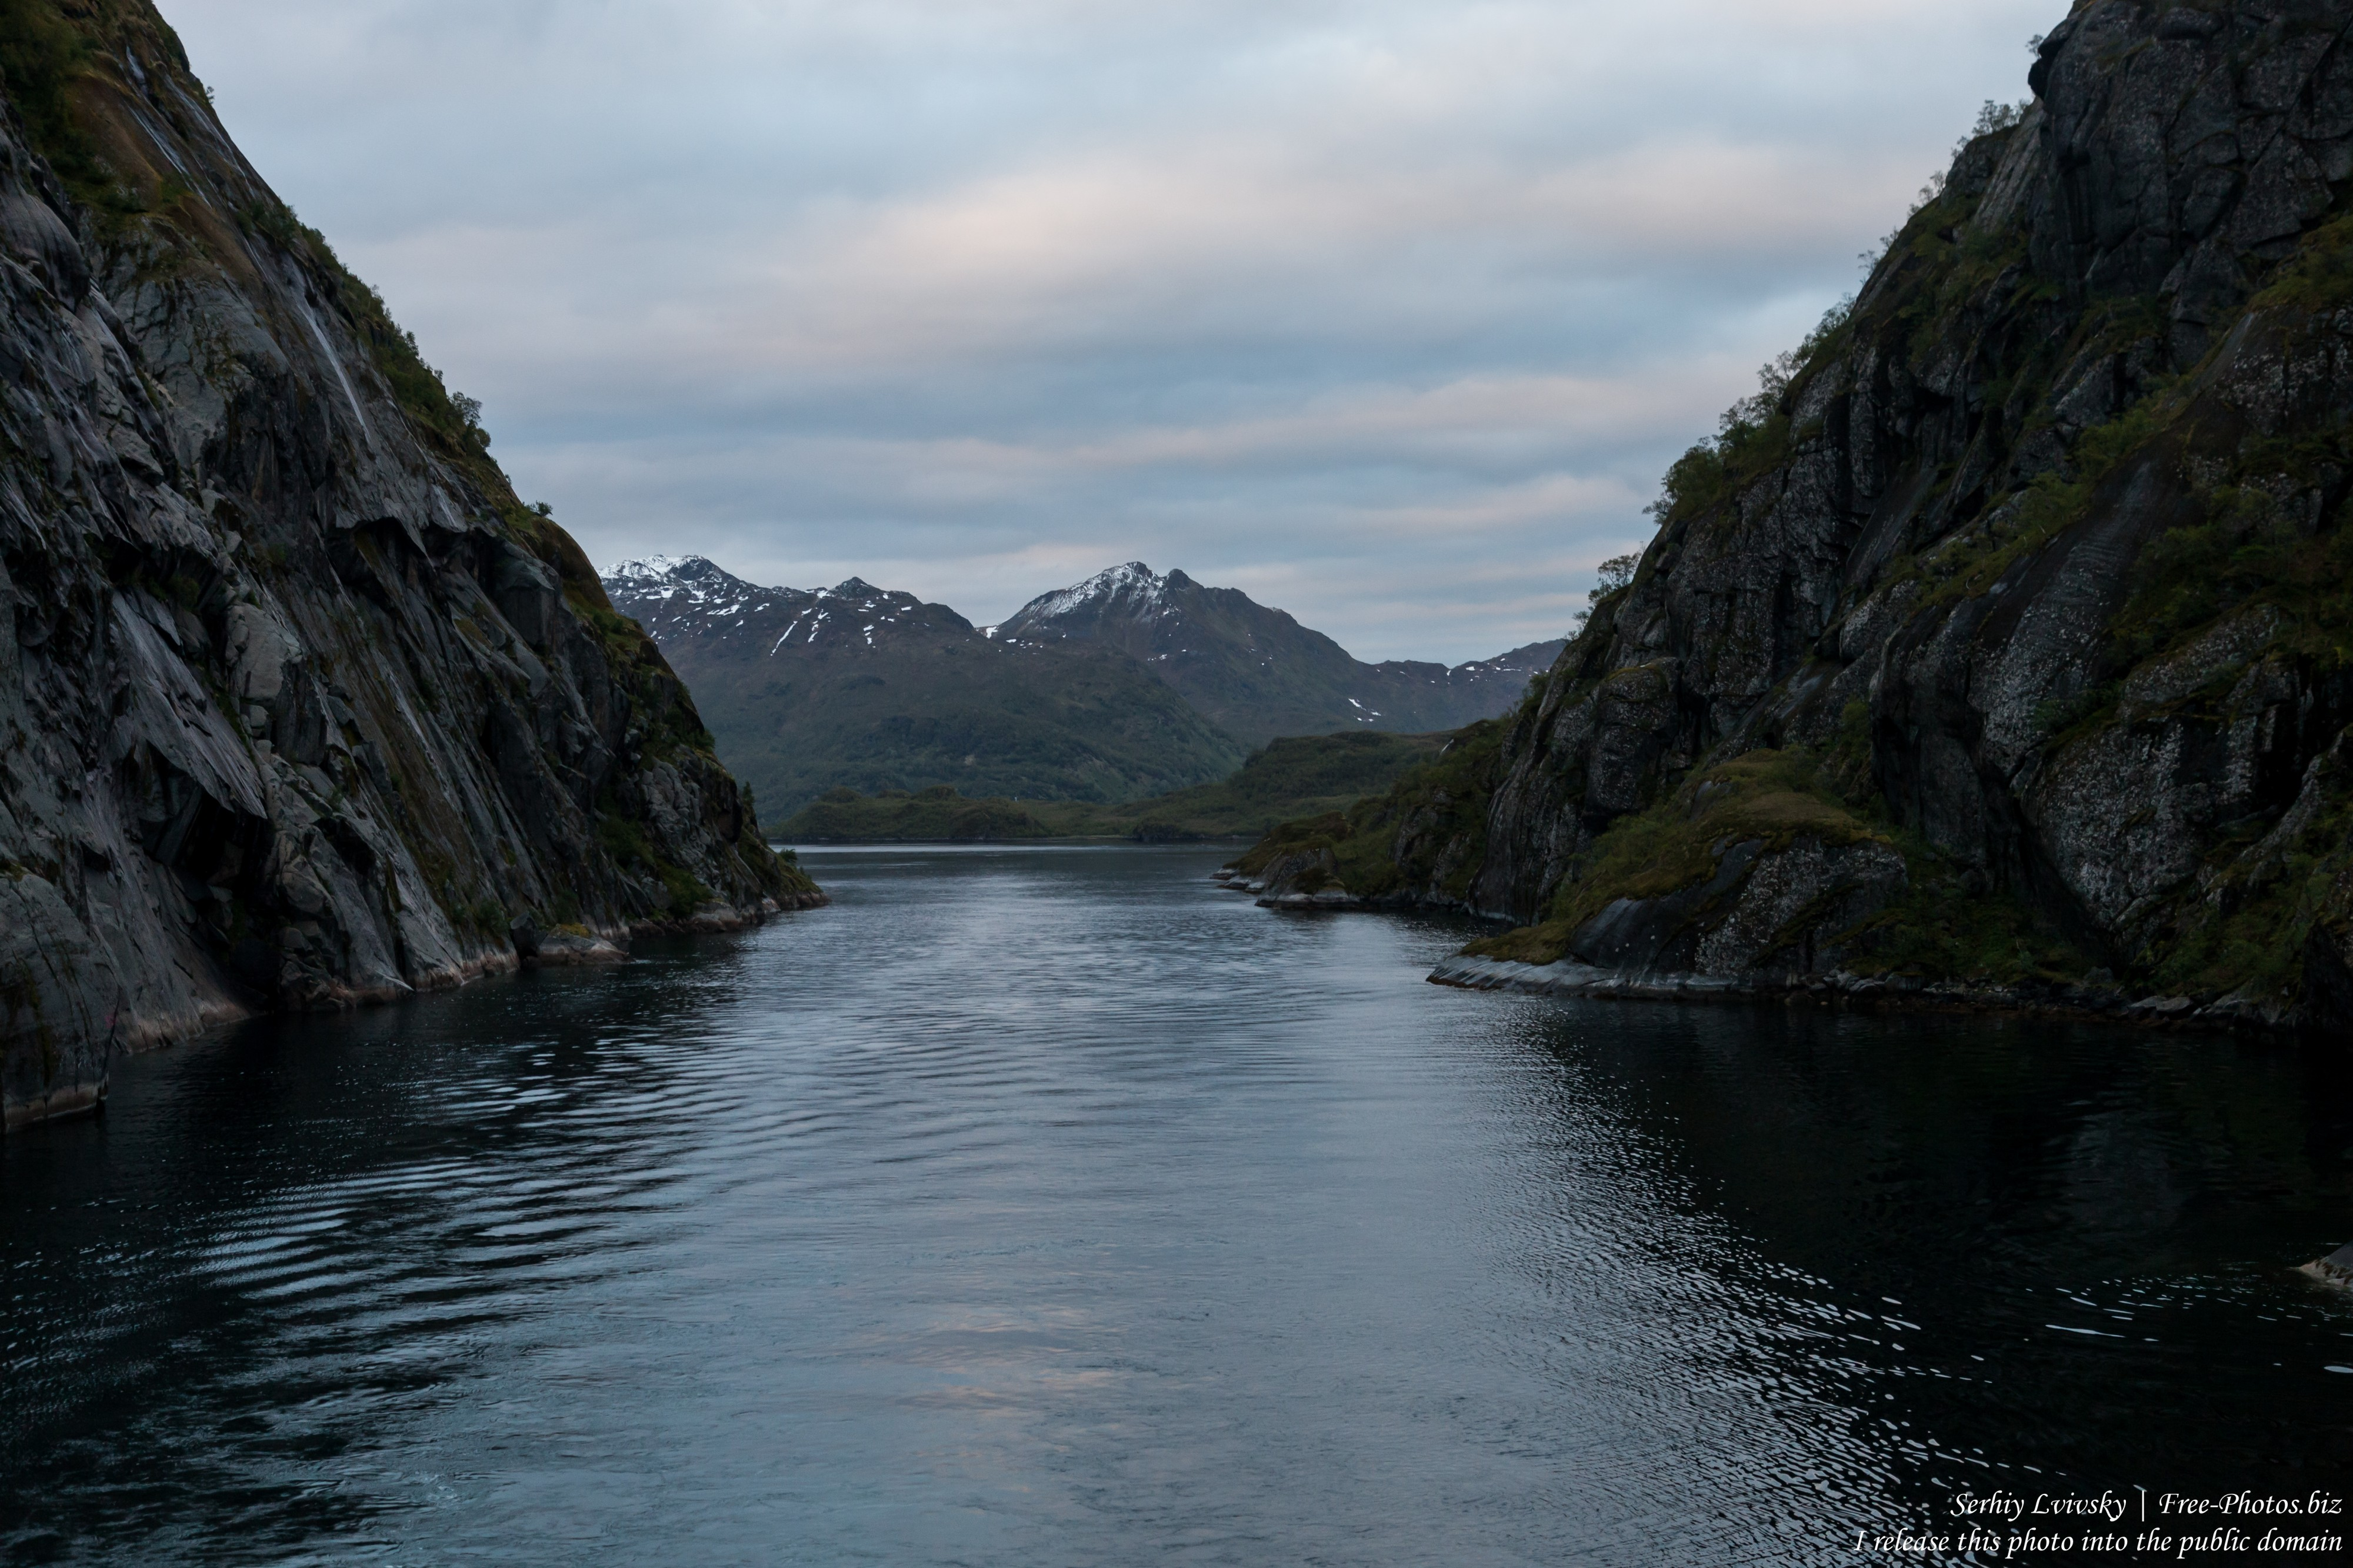 Trollfjord, Norway, photographed in June 2018 by Serhiy Lvivsky, picture 6